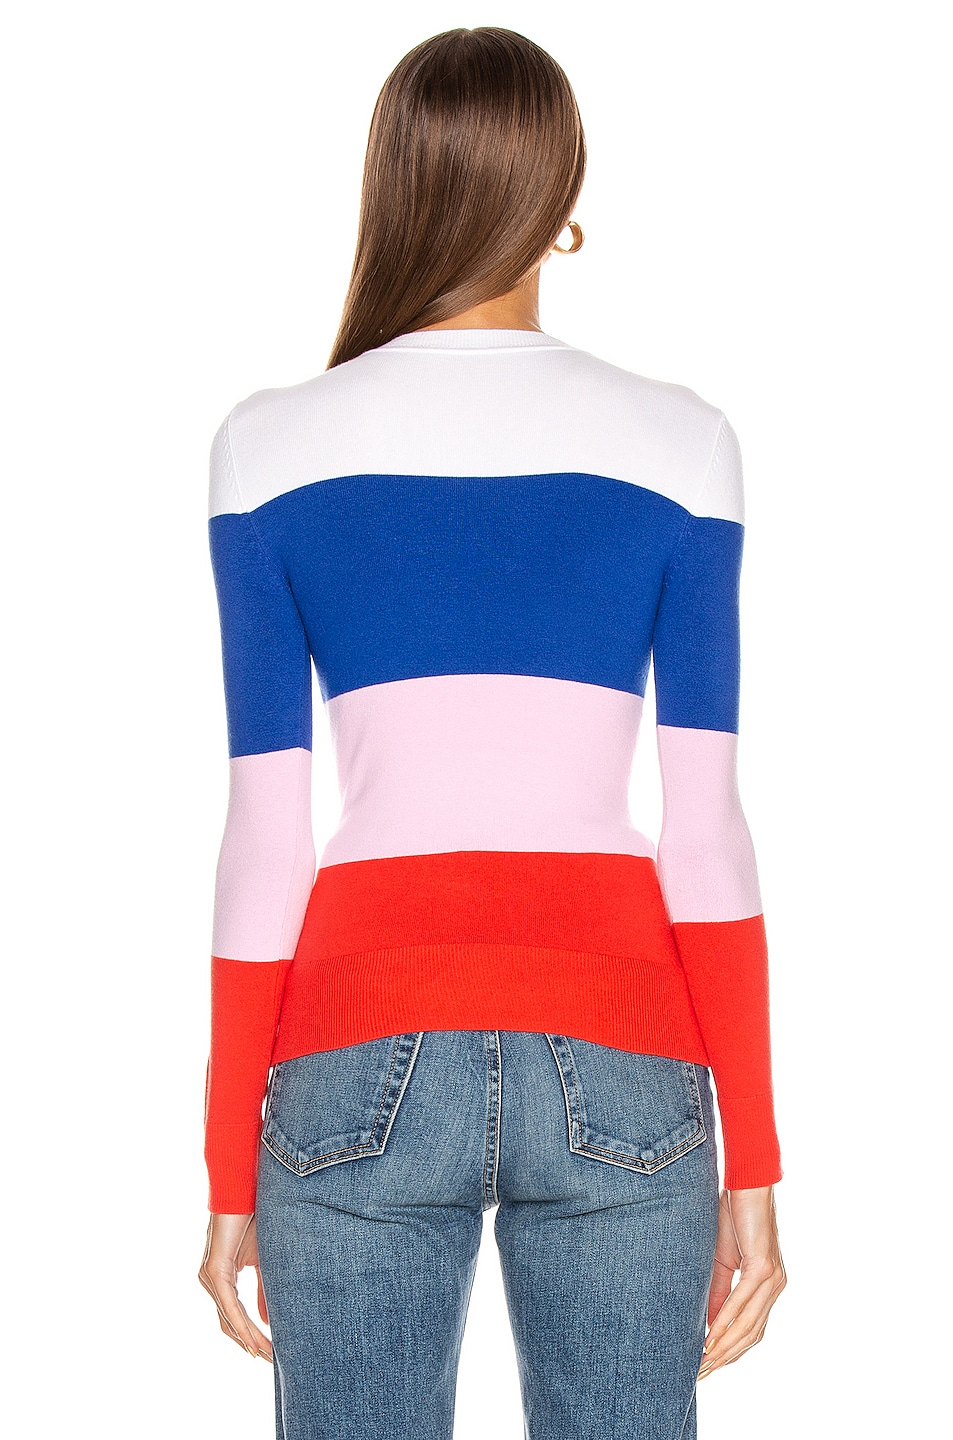 Image 3 of JoosTricot Long Sleeve Crew Neck Sweater in Laser White, Ultramarine, Wild Rose & Fire Poppy